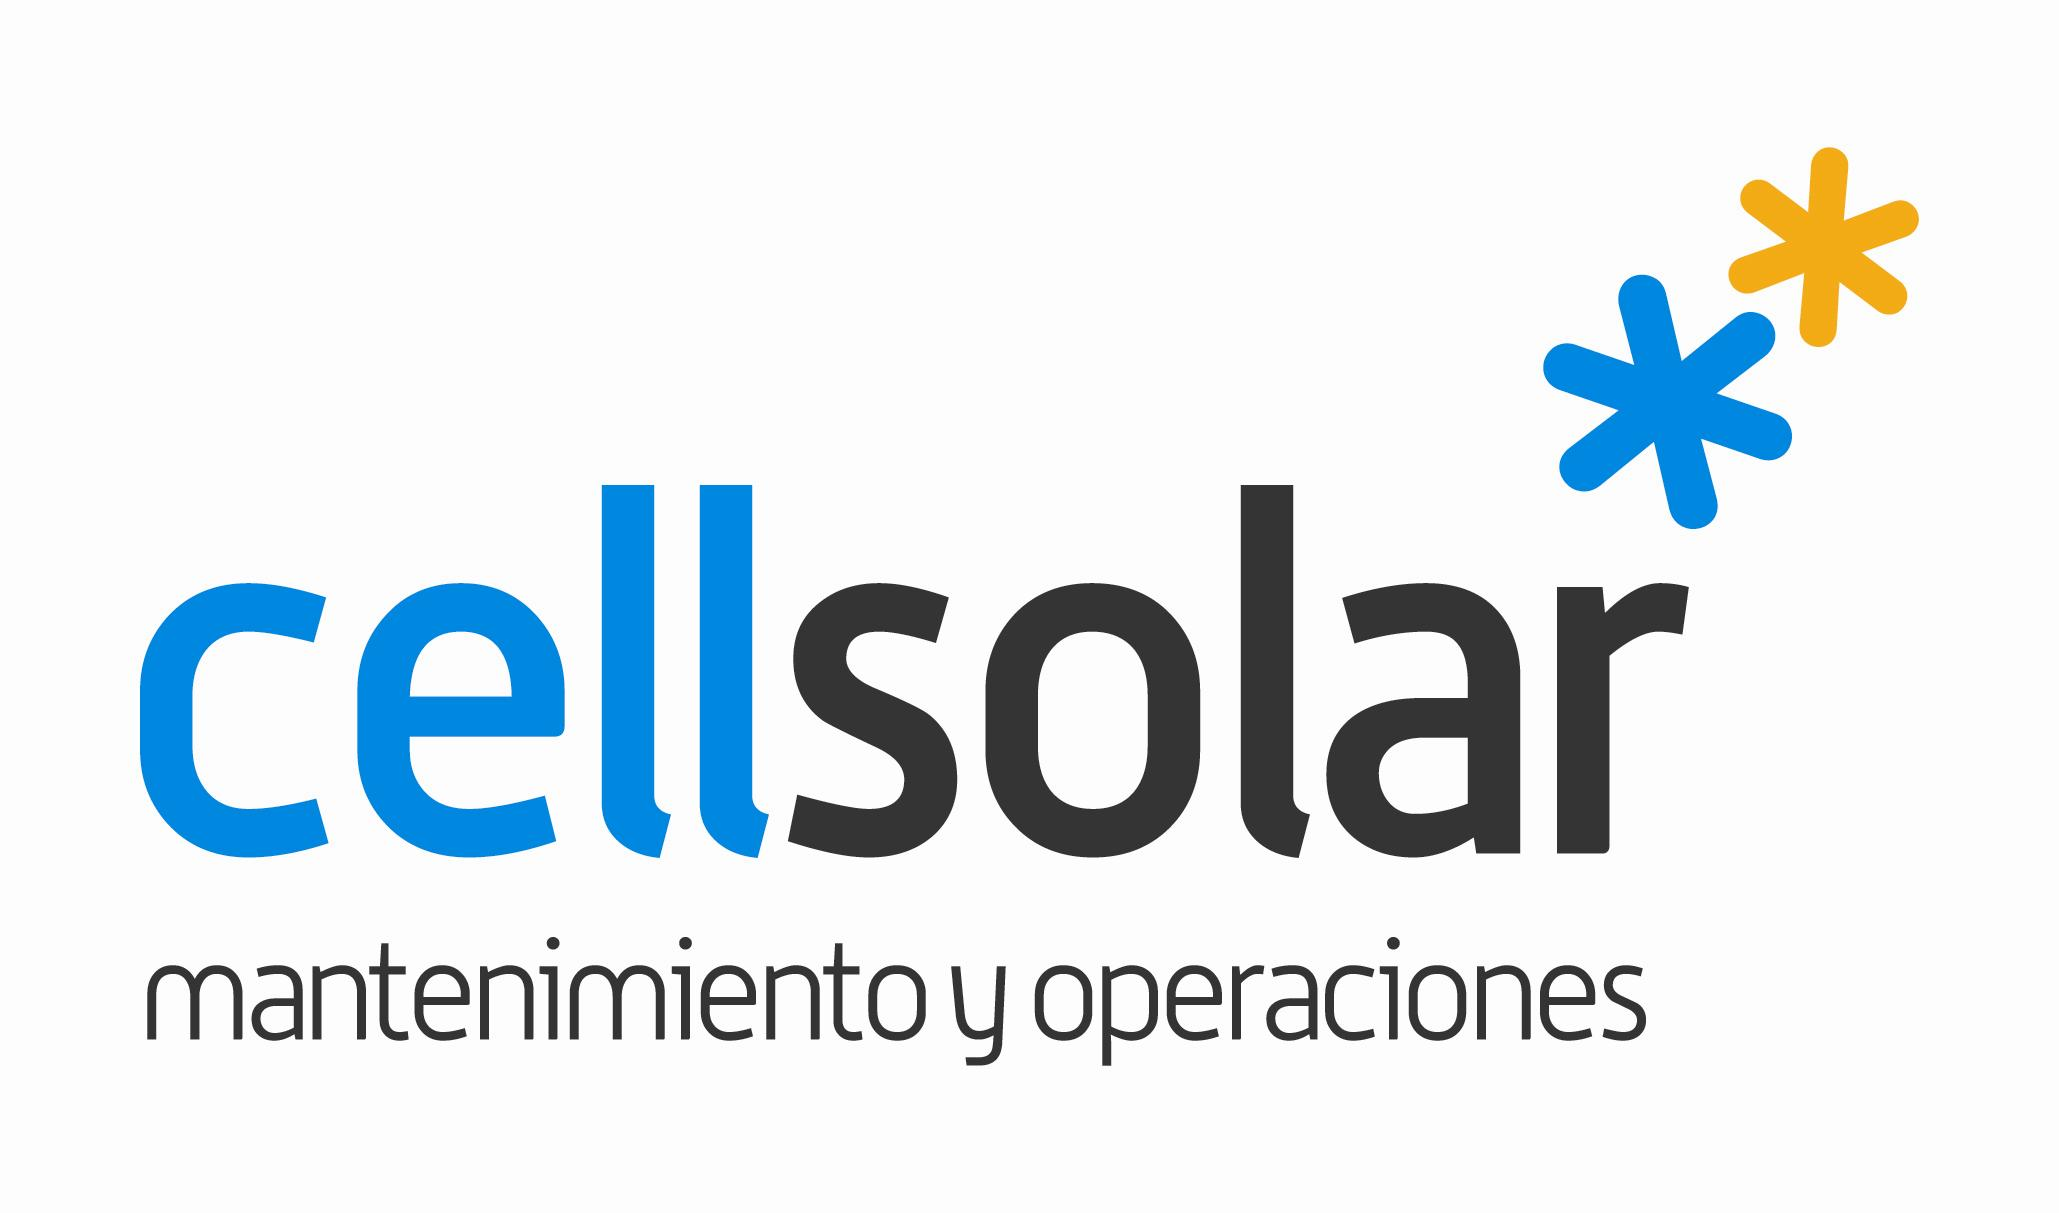 Cellsolar